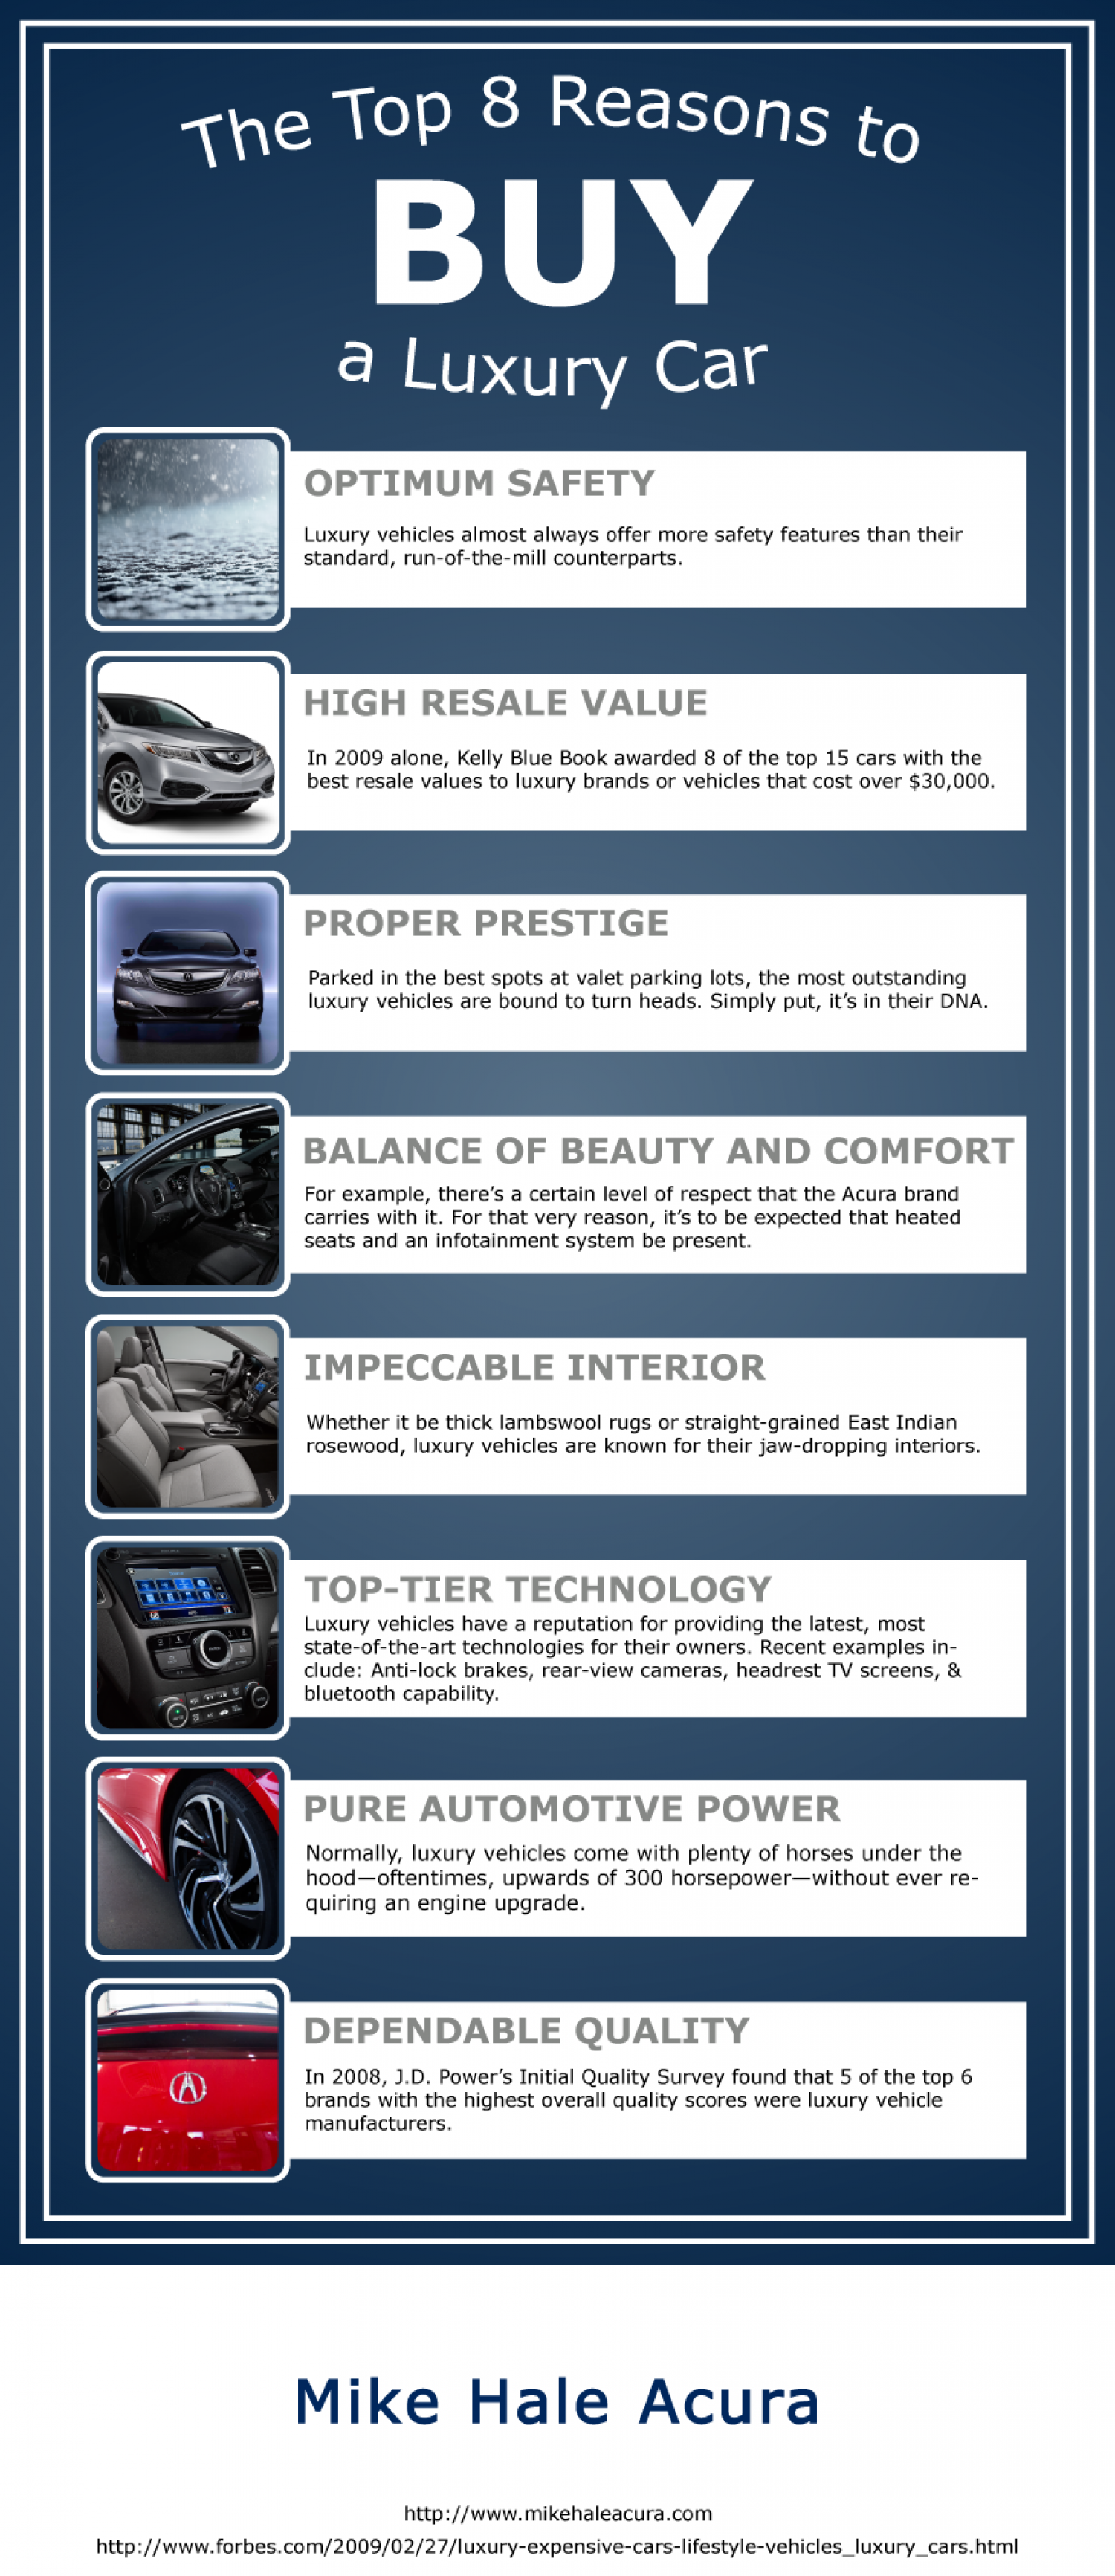 The Top 8 Reasons to Buy a Luxury Car Infographic